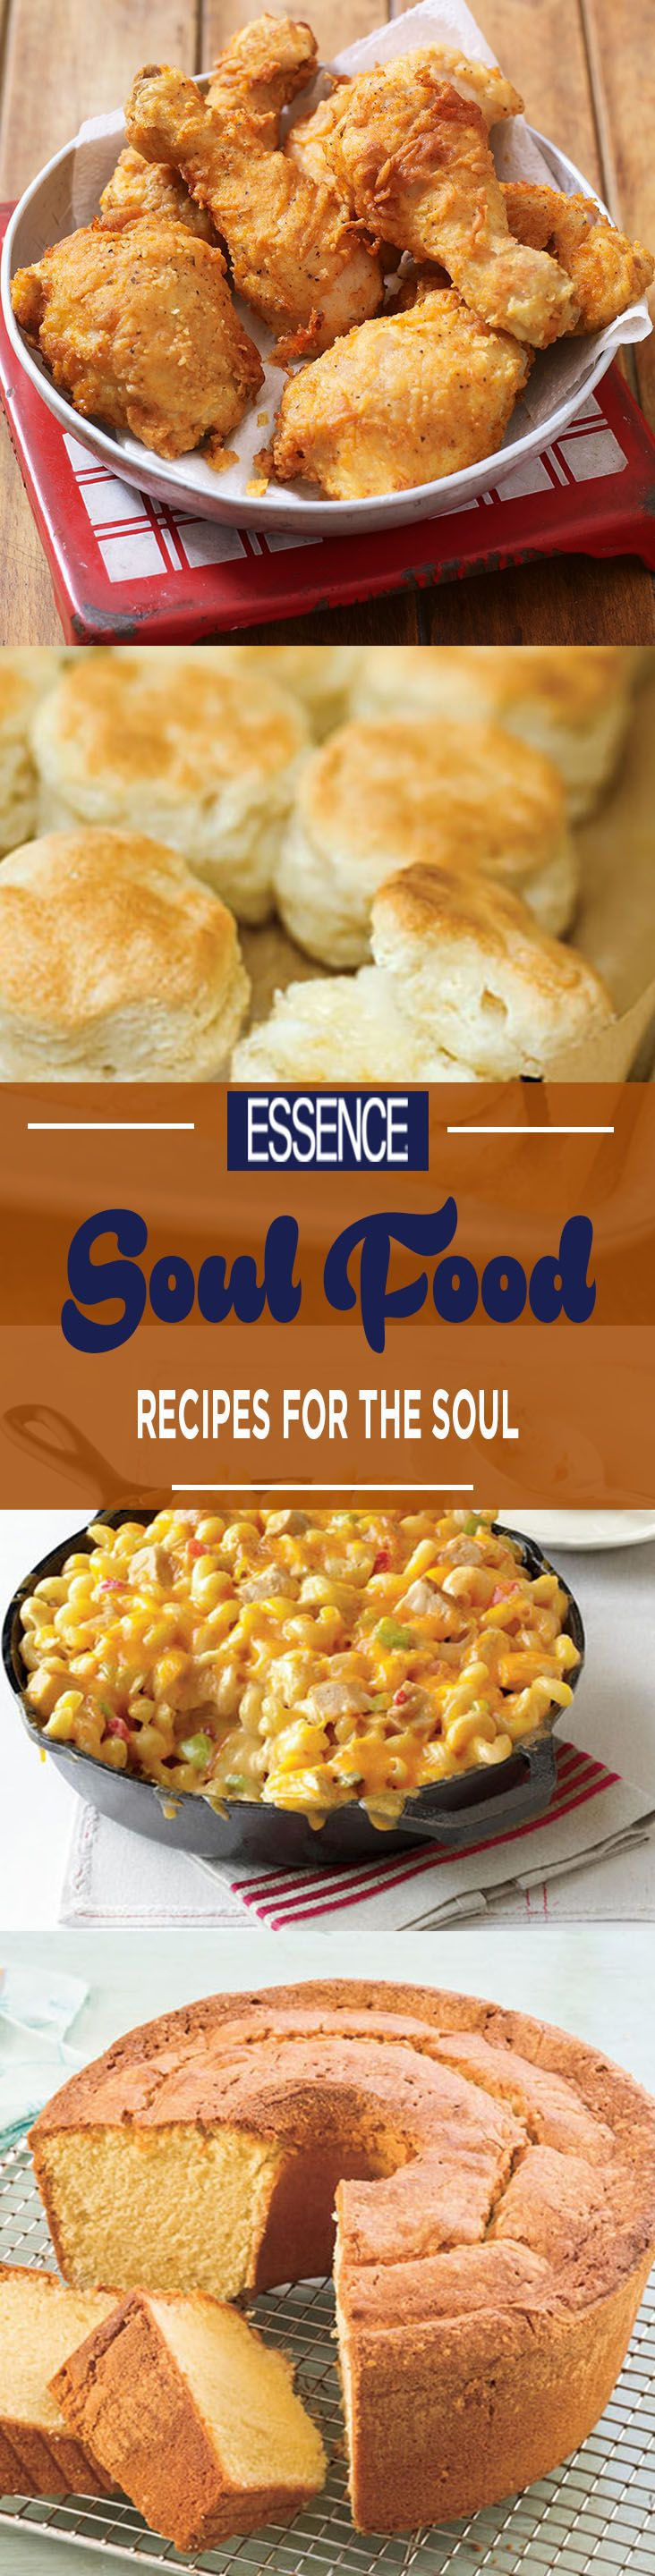 These soul food indulgences will leave you full and happy | Essence.com